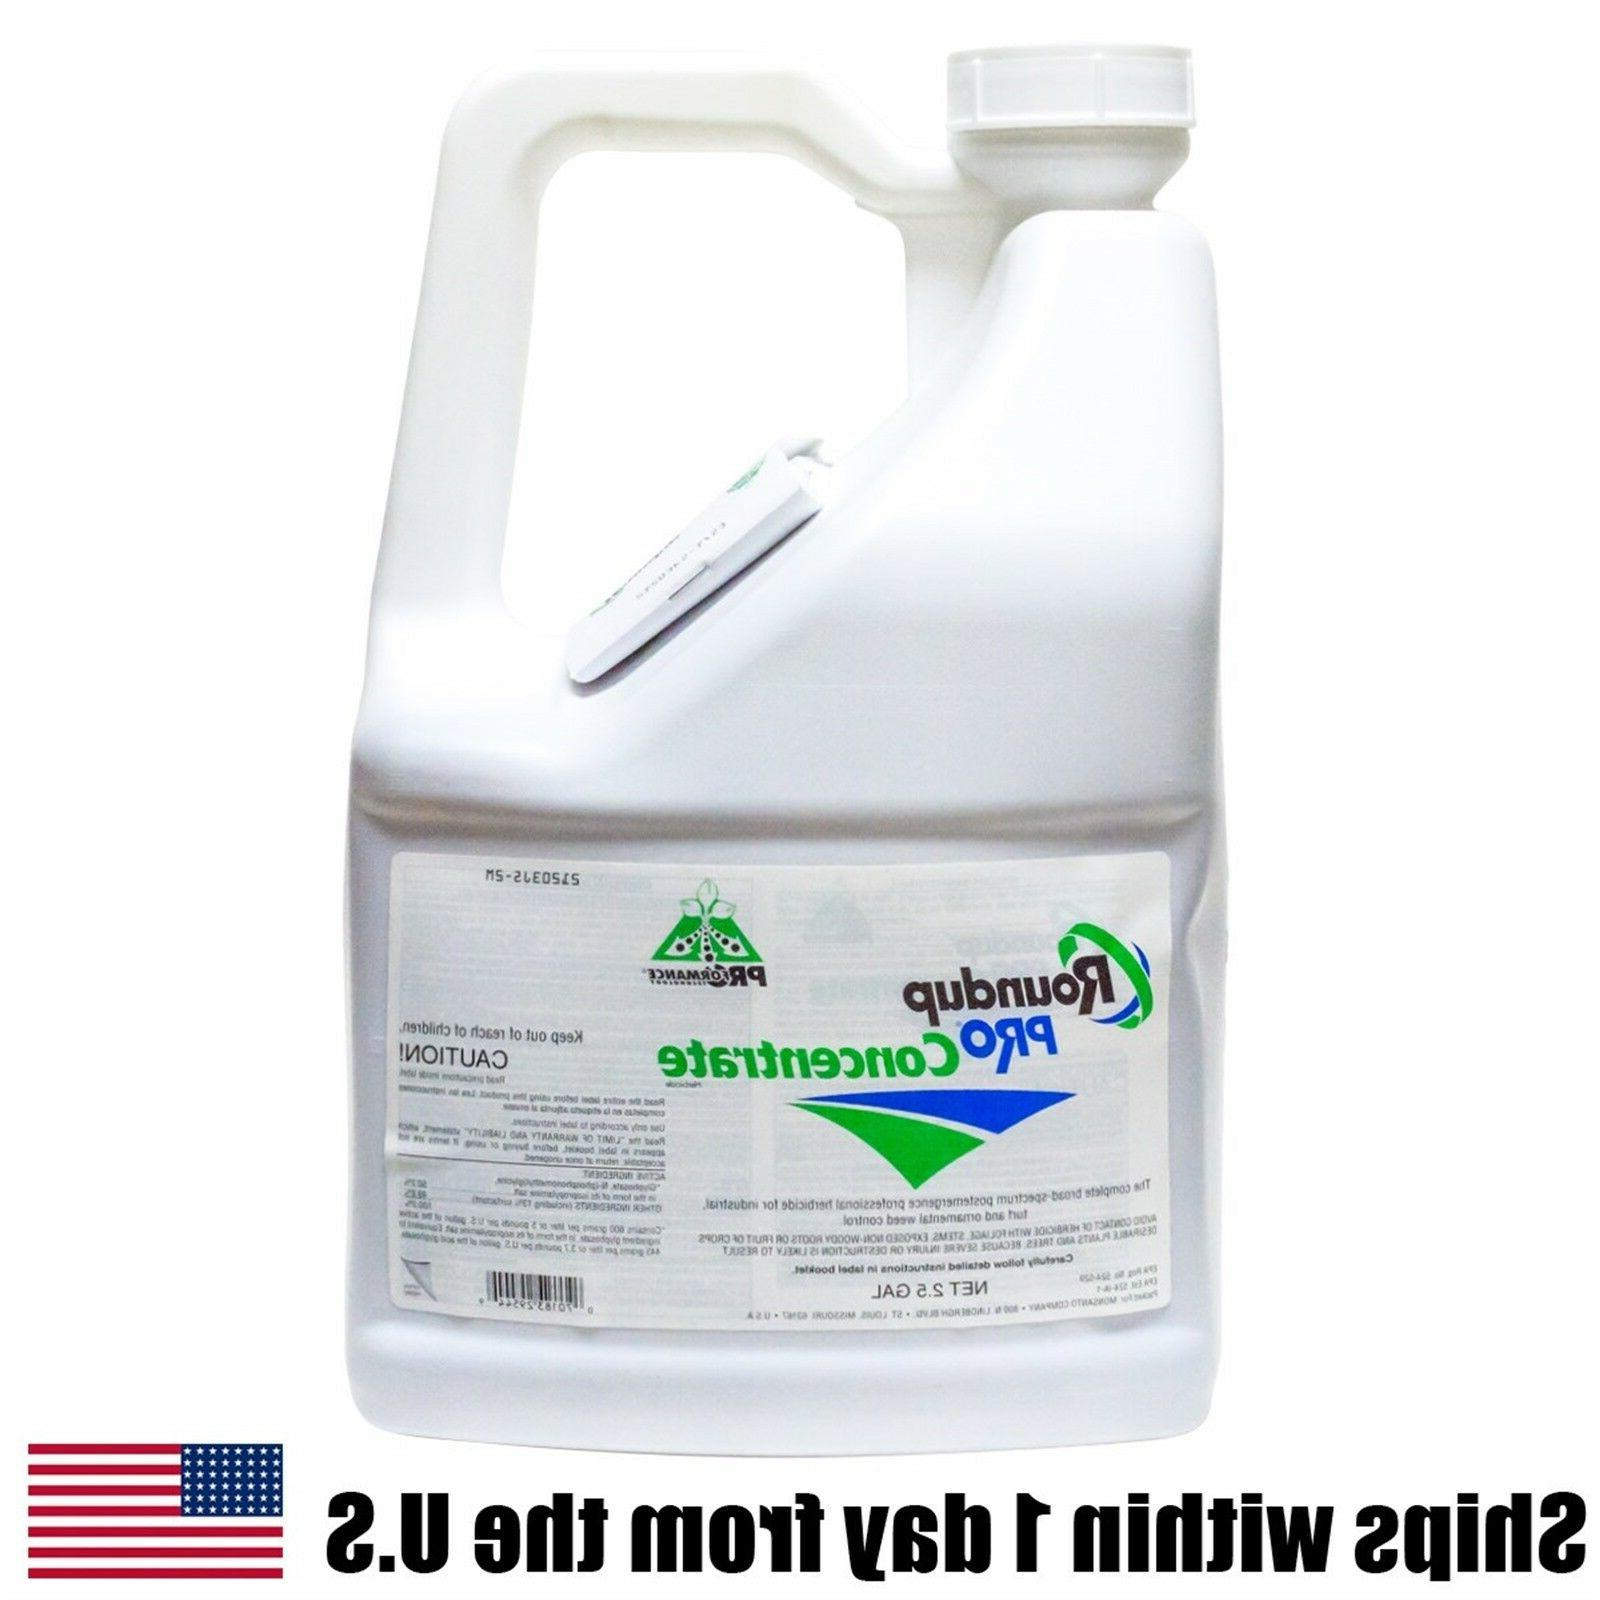 Roundup Pro Concentrate 2.5 Gals Glyphosate 50.2% Herbicide